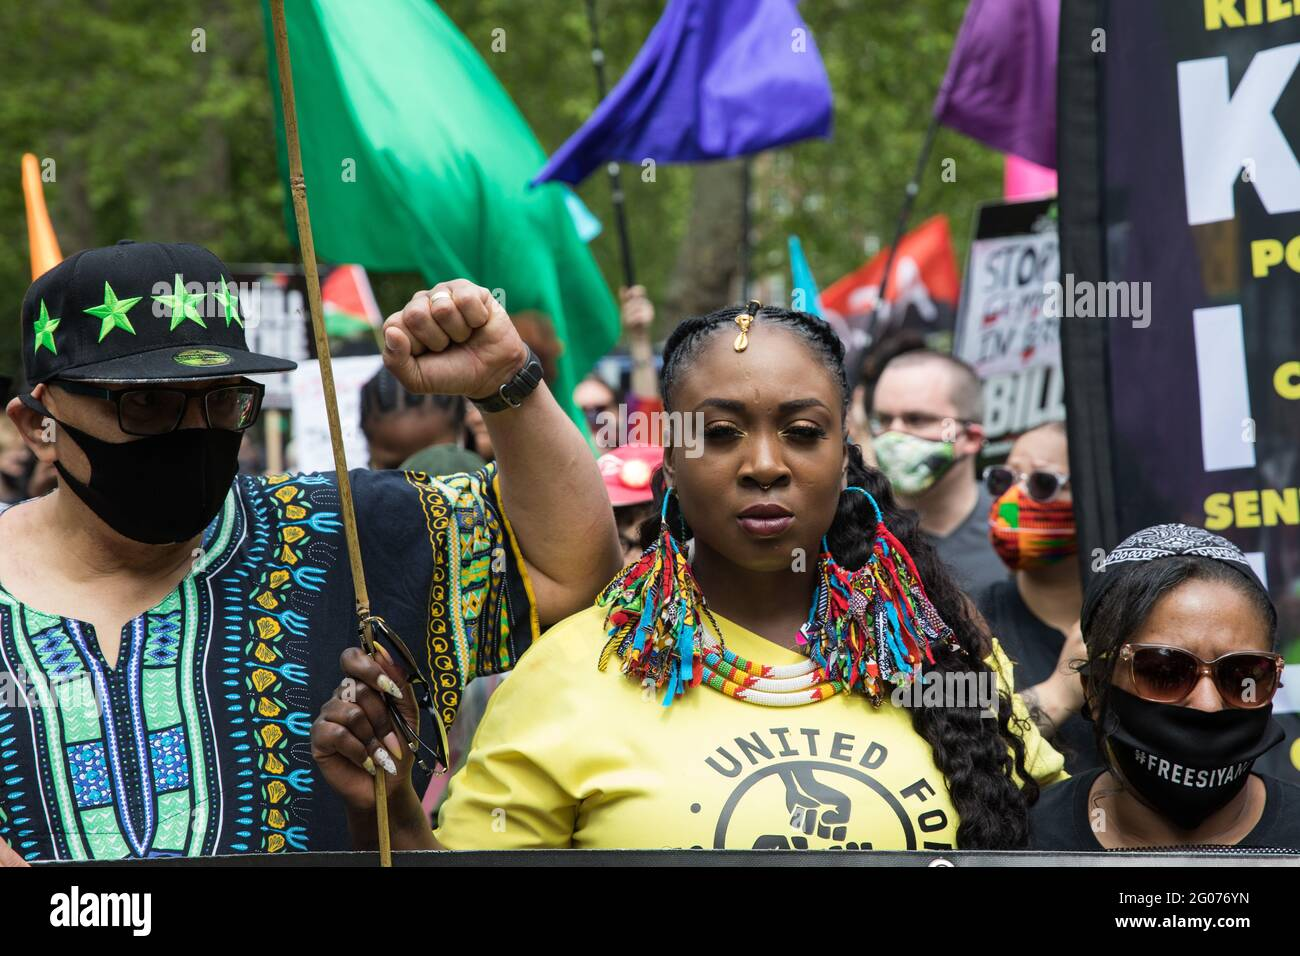 London, UK. 29th May, 2021. Lee Jasper (l) and Marvina Newton (c, founder of United for Black Lives, take part in a Kill The Bill National Day of Action in protest against the Police, Crime, Sentencing and Courts (PCSC) Bill 2021. Credit: Mark Kerrison/Alamy Live News Stock Photo